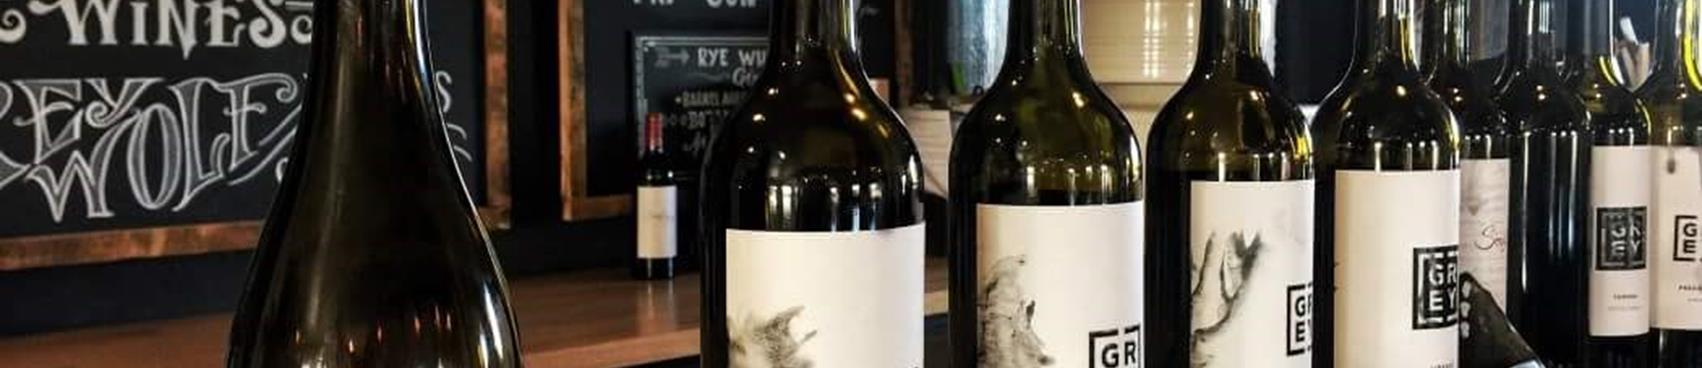 A image of Grey Wolf Cellars & Barton Family Wines